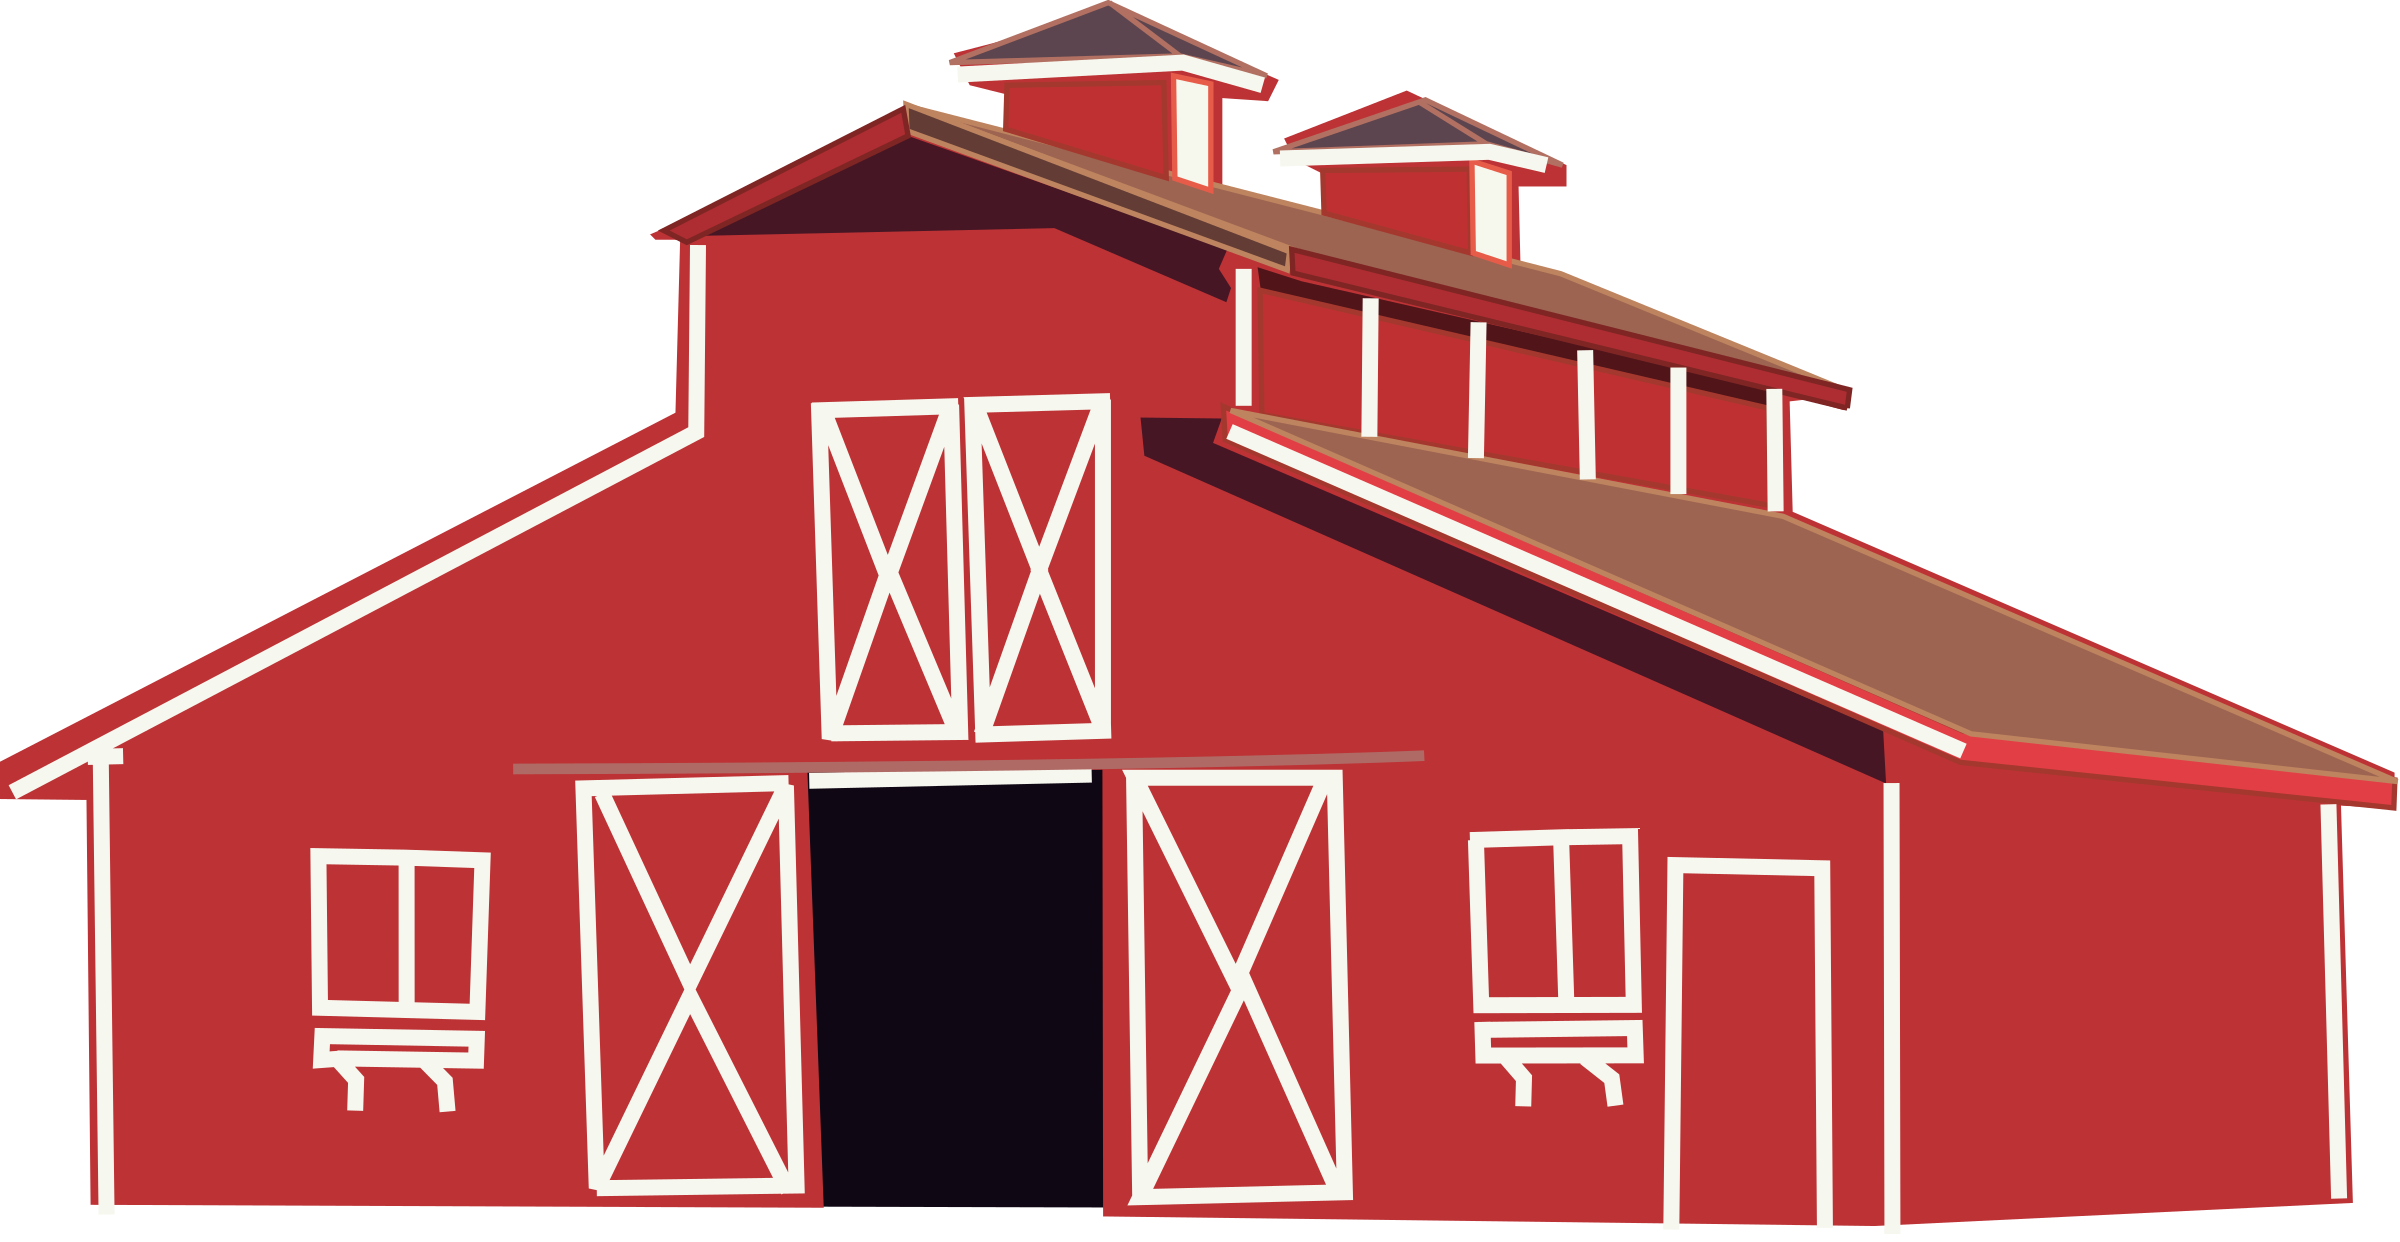 Farmhouse clipart big red barn. Drawing at getdrawings com